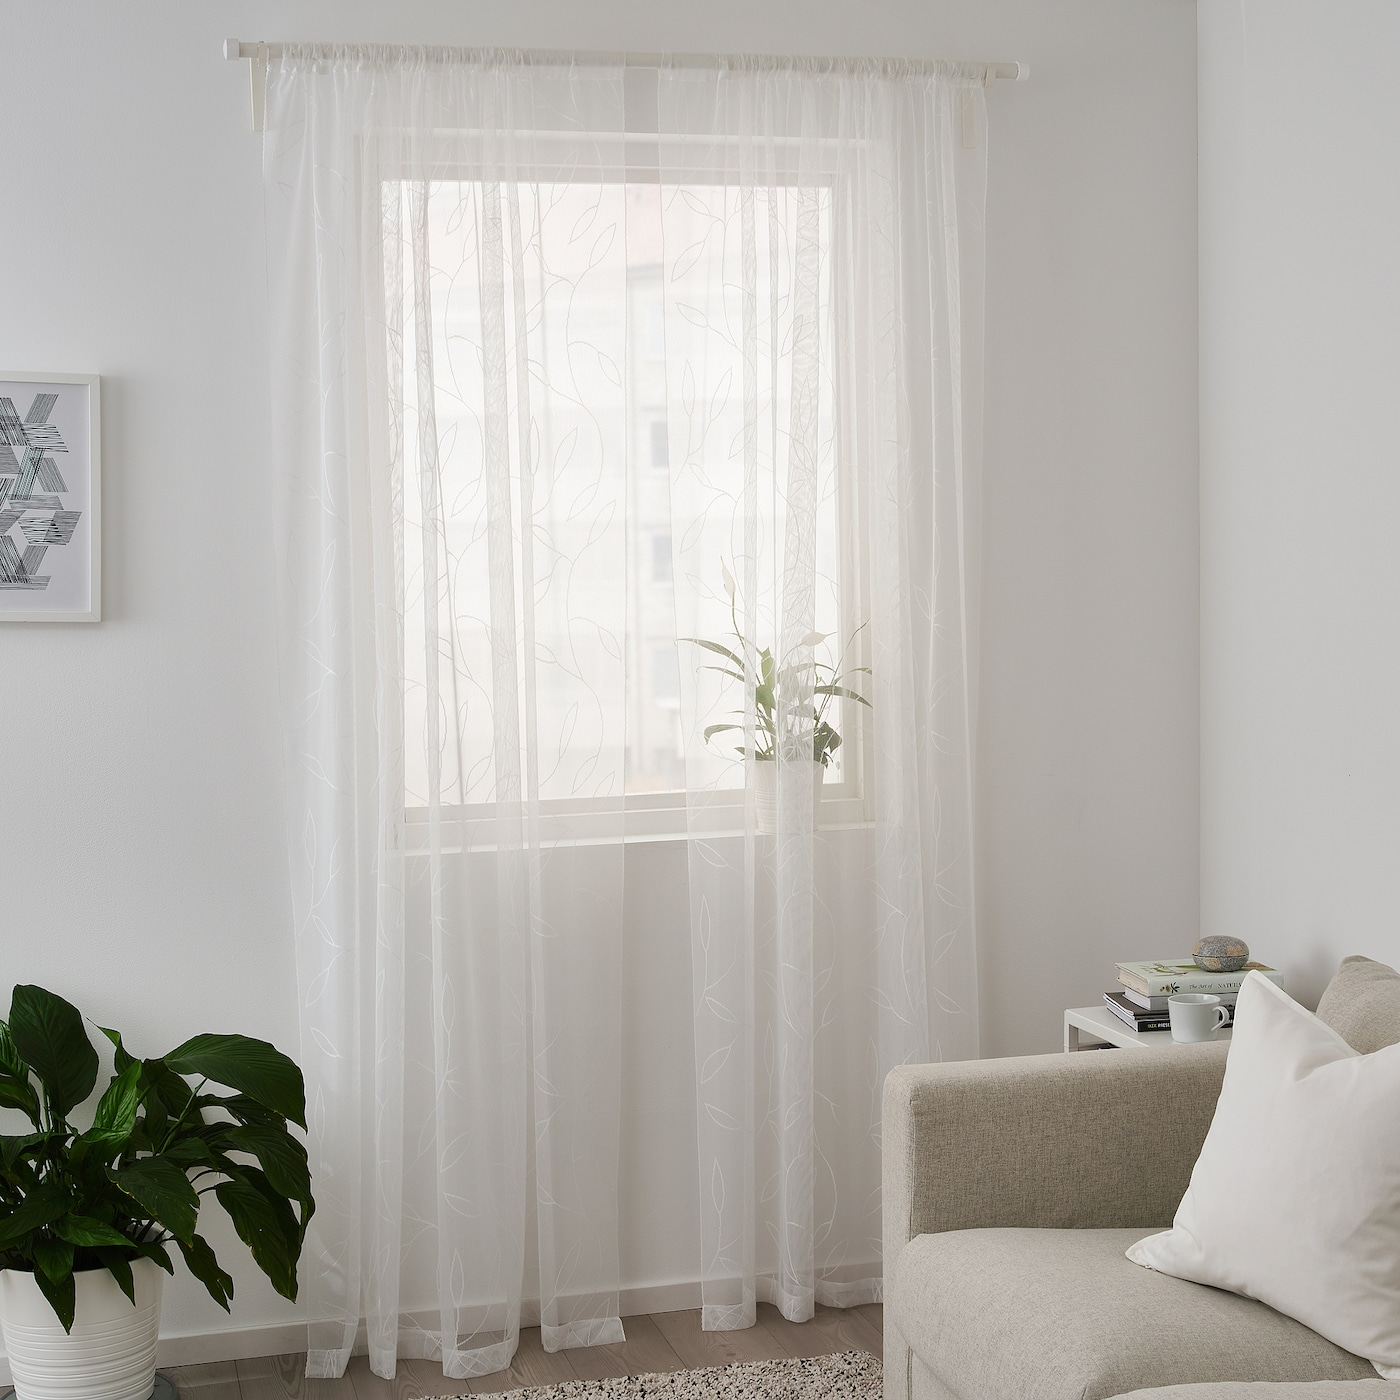 Lillegerd White Leaves Sheer Curtains 1 Pair 145x250 Cm Ikea